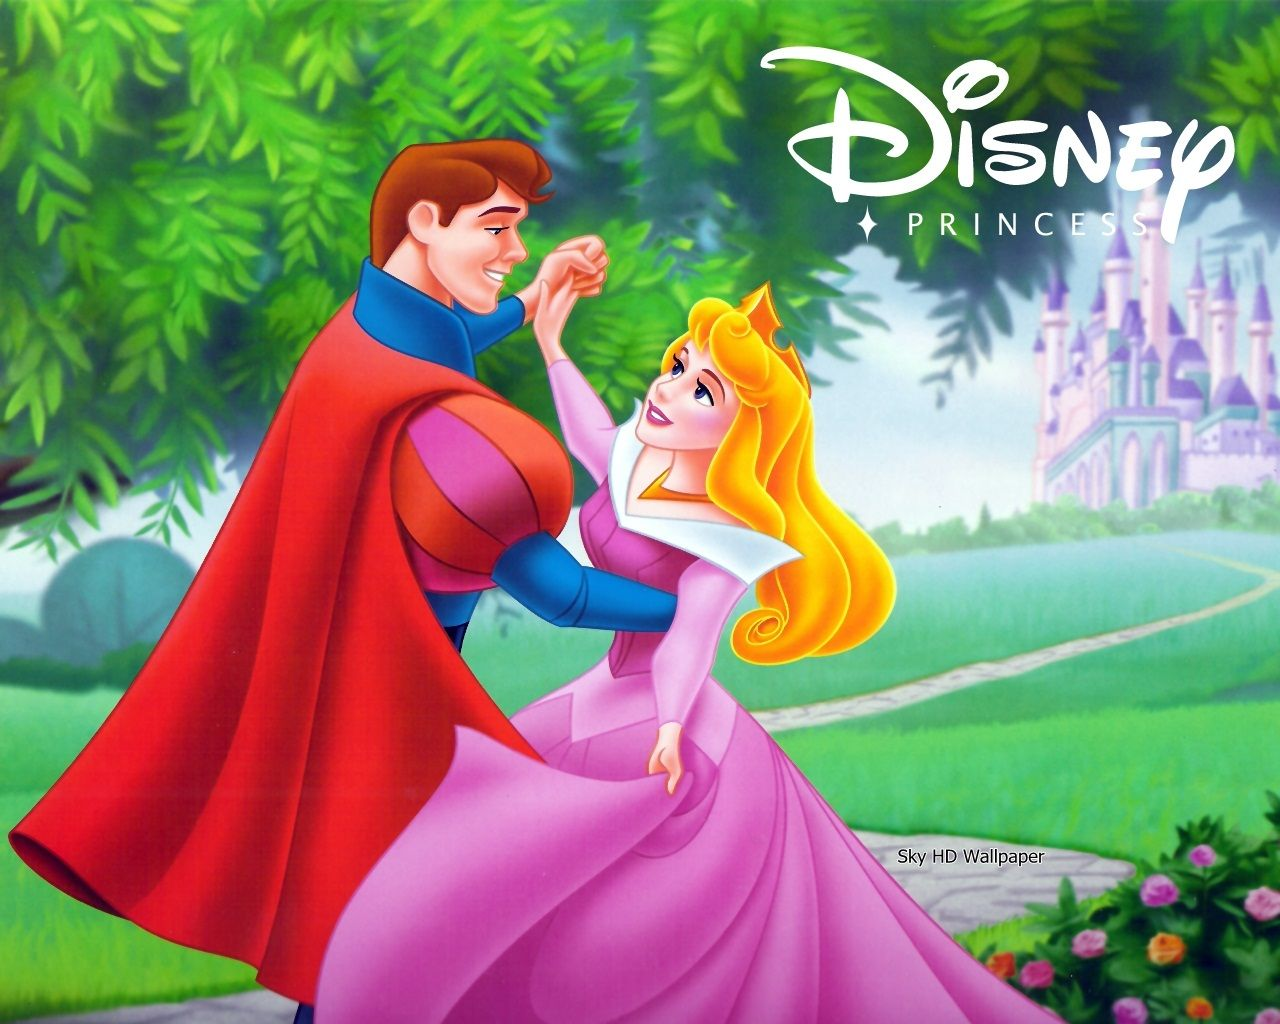 undefined Princess Images Wallpapers (54 Wallpapers) | Adorable Wallpapers